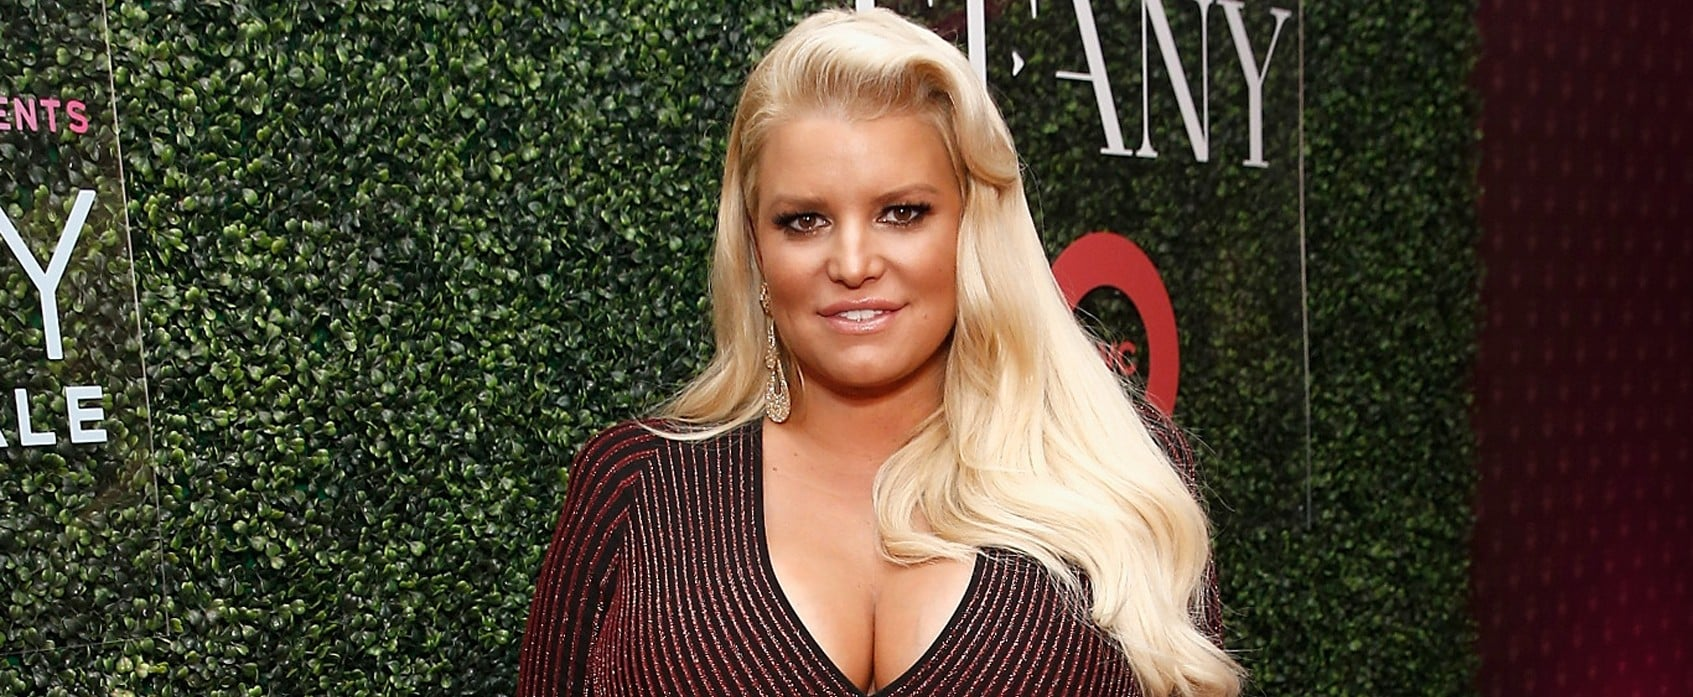 Jessica Simpson Uses Cupping on Swollen Foot January 2019